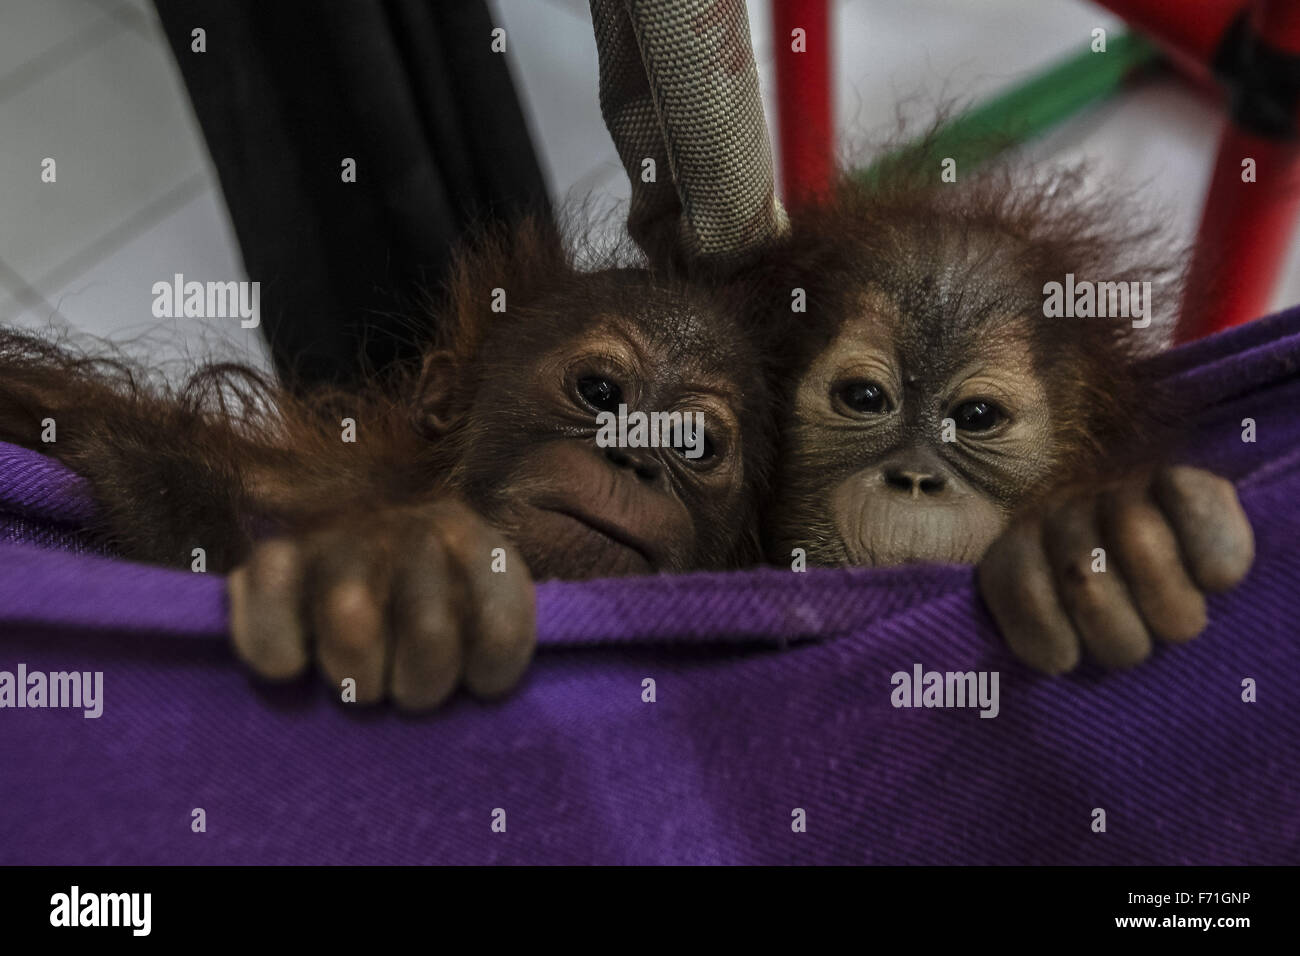 North Sumatra, Indonesia. 23rd Nov, 2015. Photo taken on Nov. 23, 2015 shows two baby orangutans waiting for medical - Stock Image